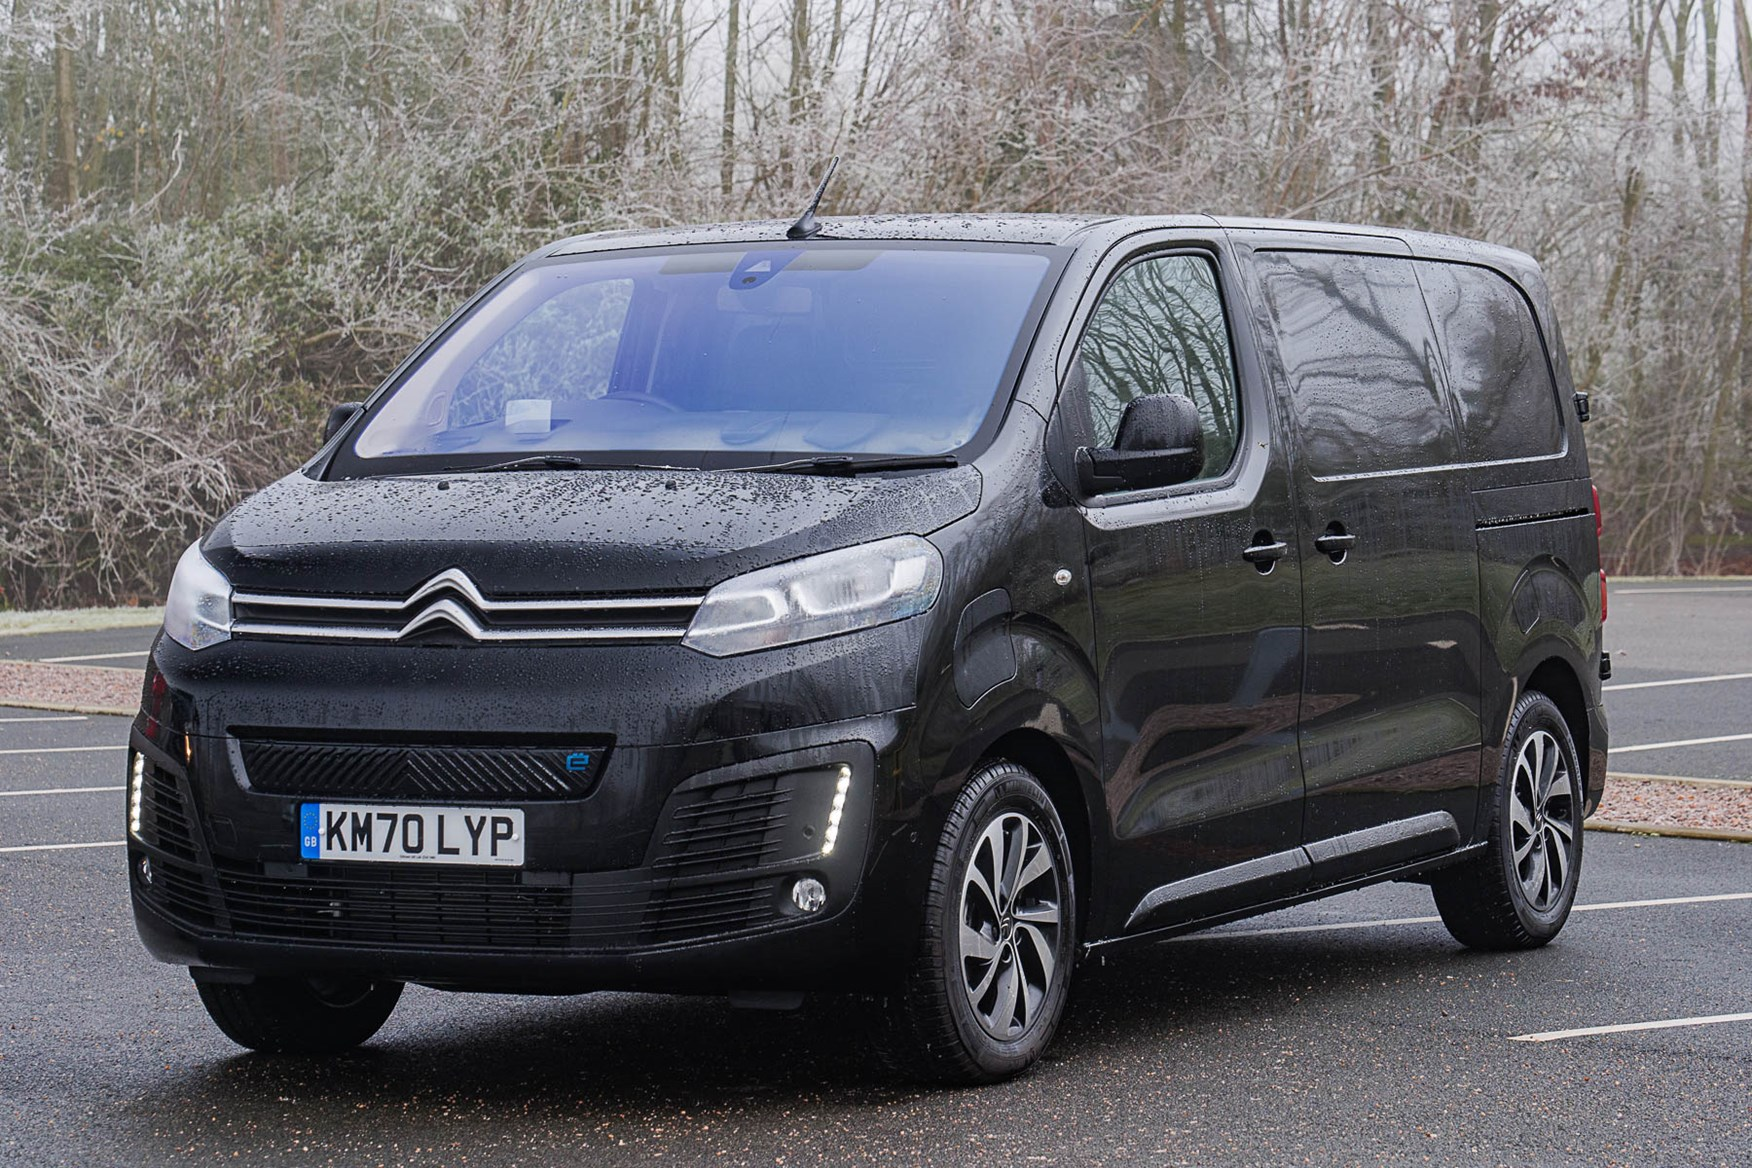 Citroen e-Dispatch, black, 75kWh, Drive